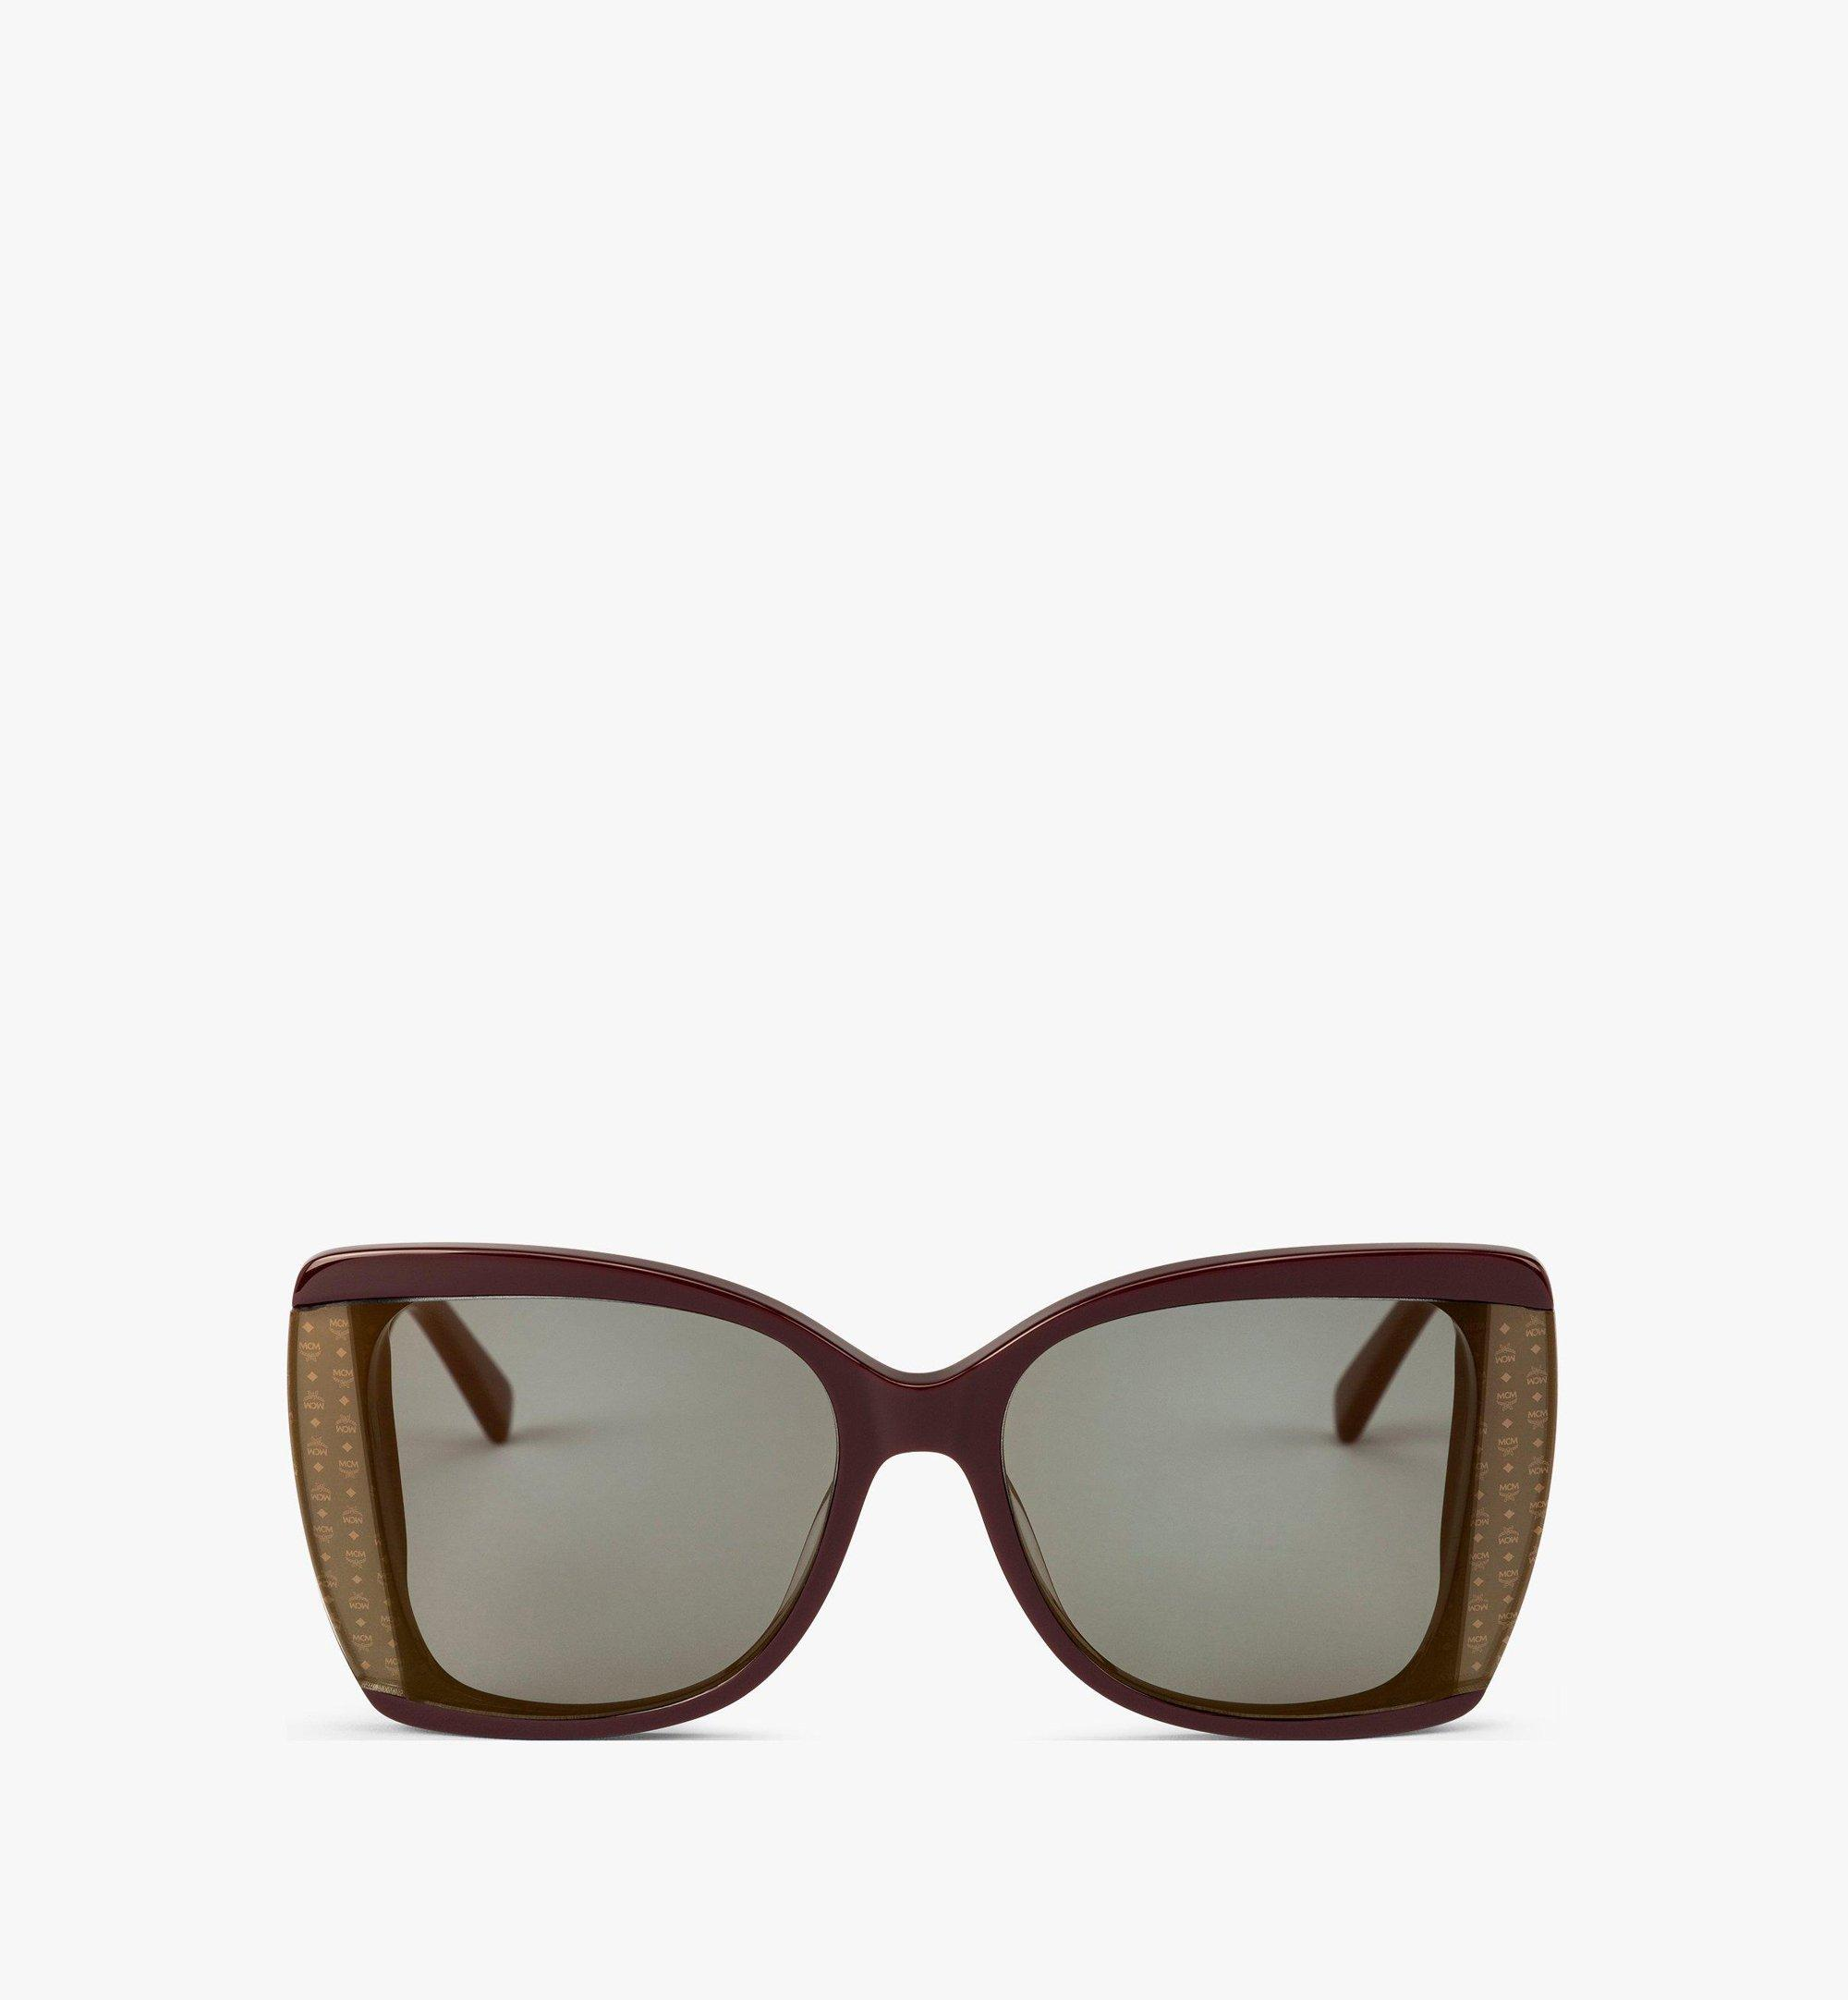 MCM MCM710S Butterfly Sunglasses Red MEGBAMM06RB001 Alternate View 1